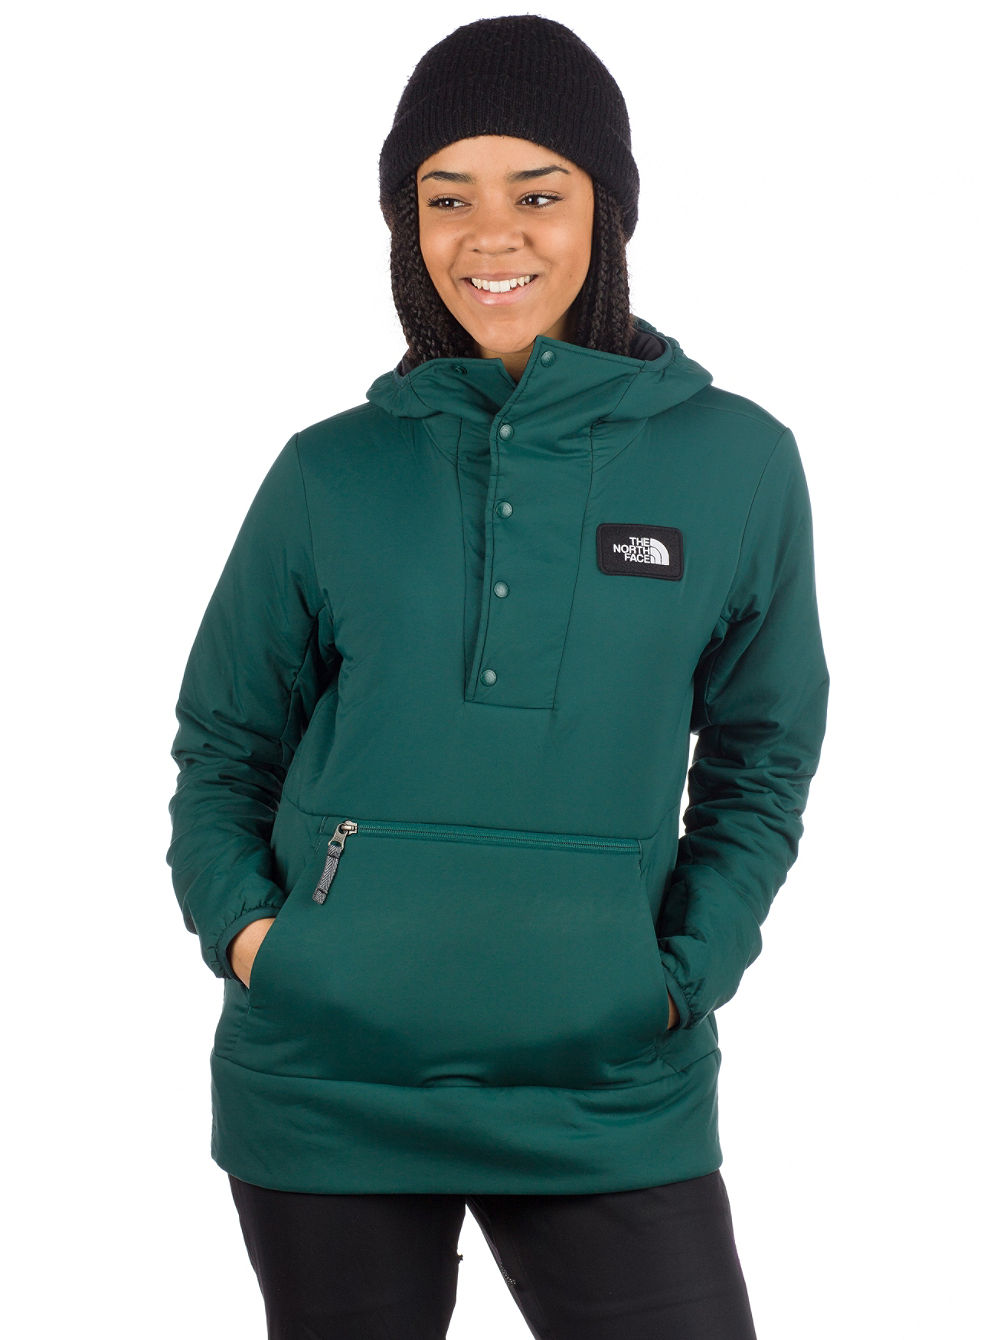 Mountain Shredshirt Riding Hoodie